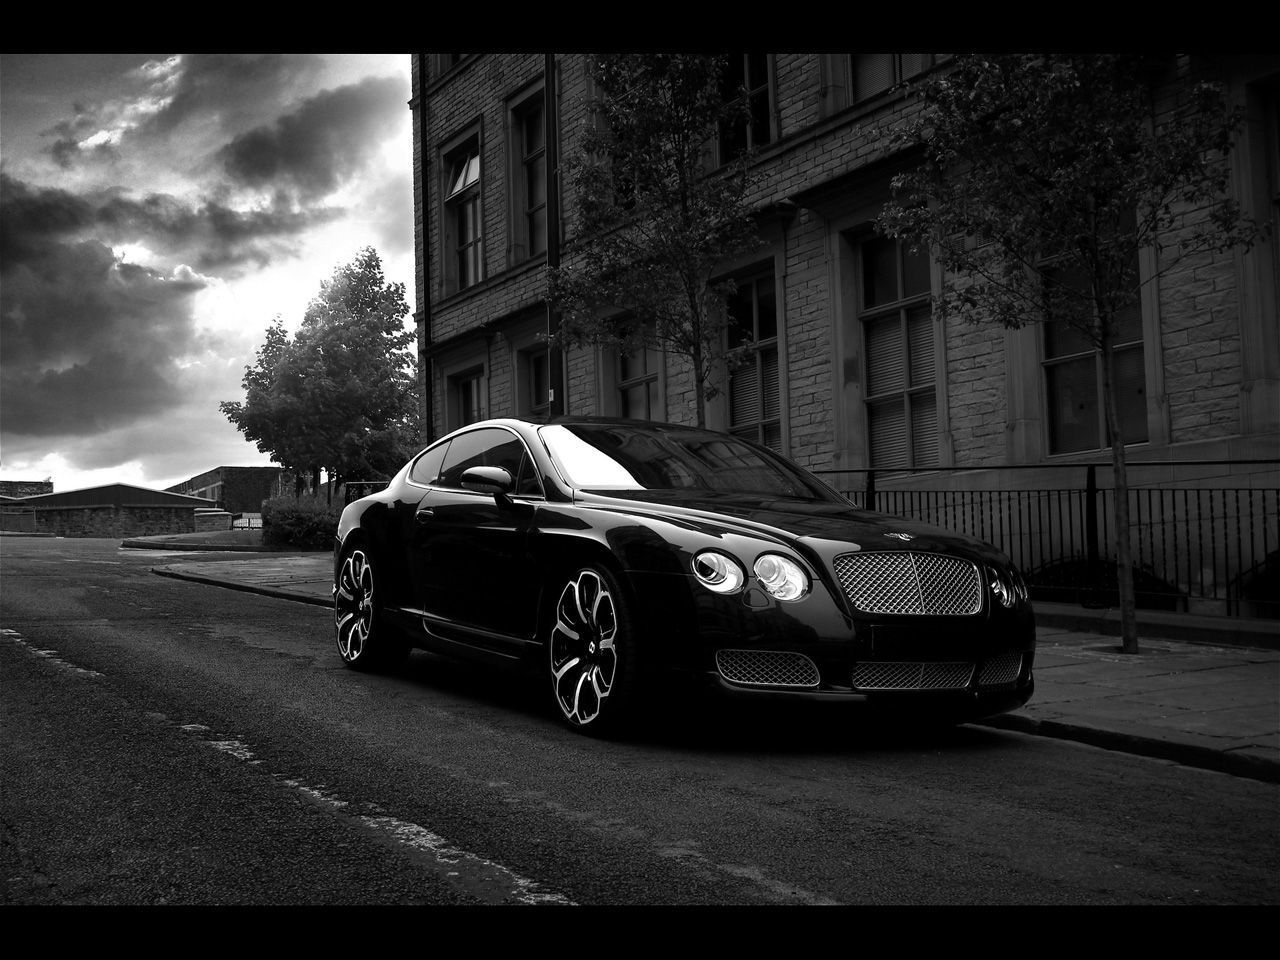 Black car hd wallpaper 1280x960 16281 download wallpaper photo 2 of 2008 project kahn bentley continental gts black edition vanachro Images